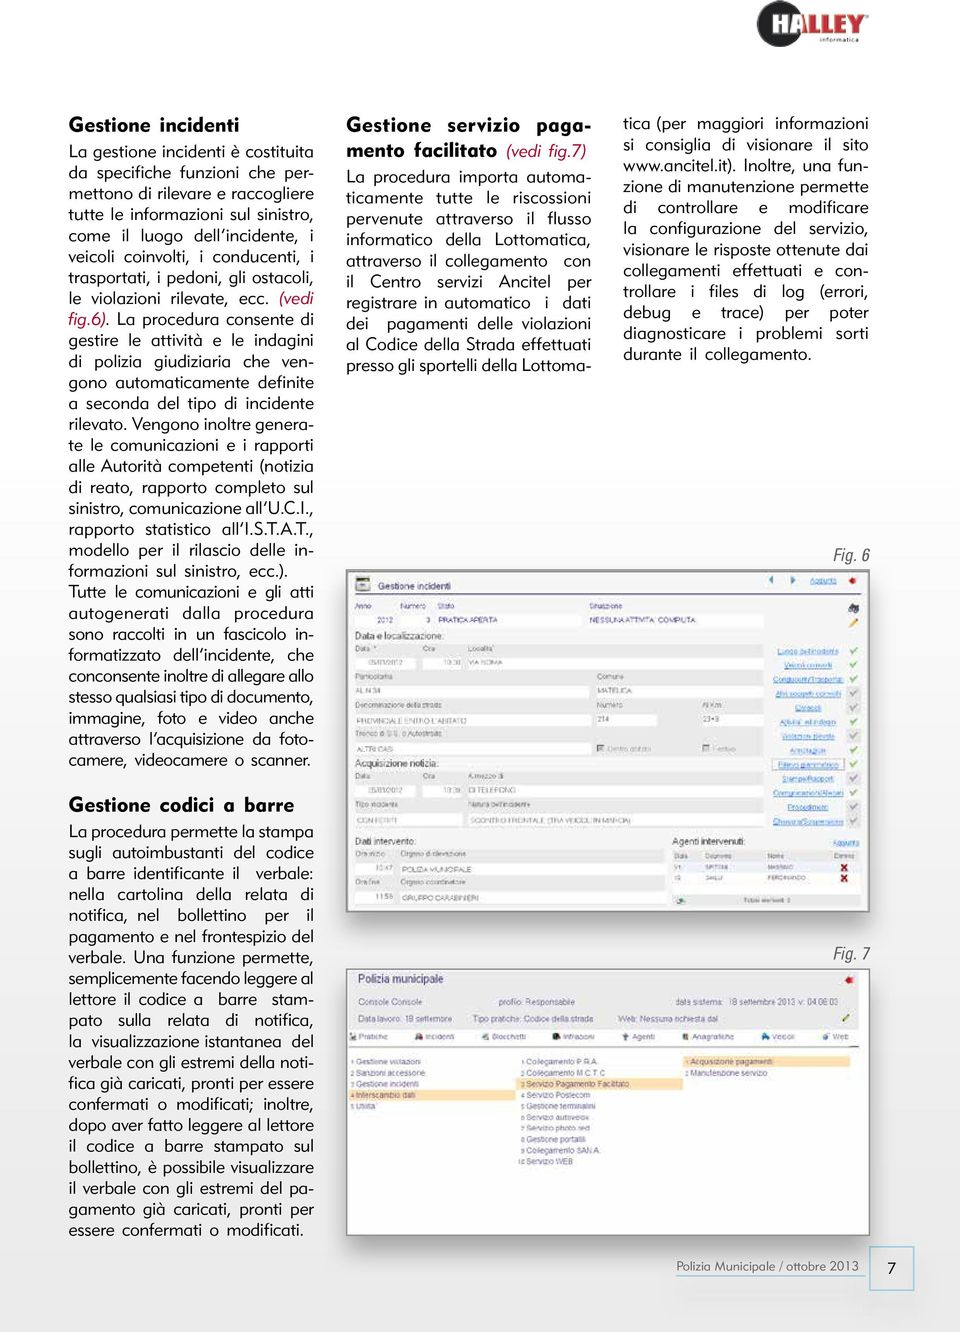 generate pdf from html c